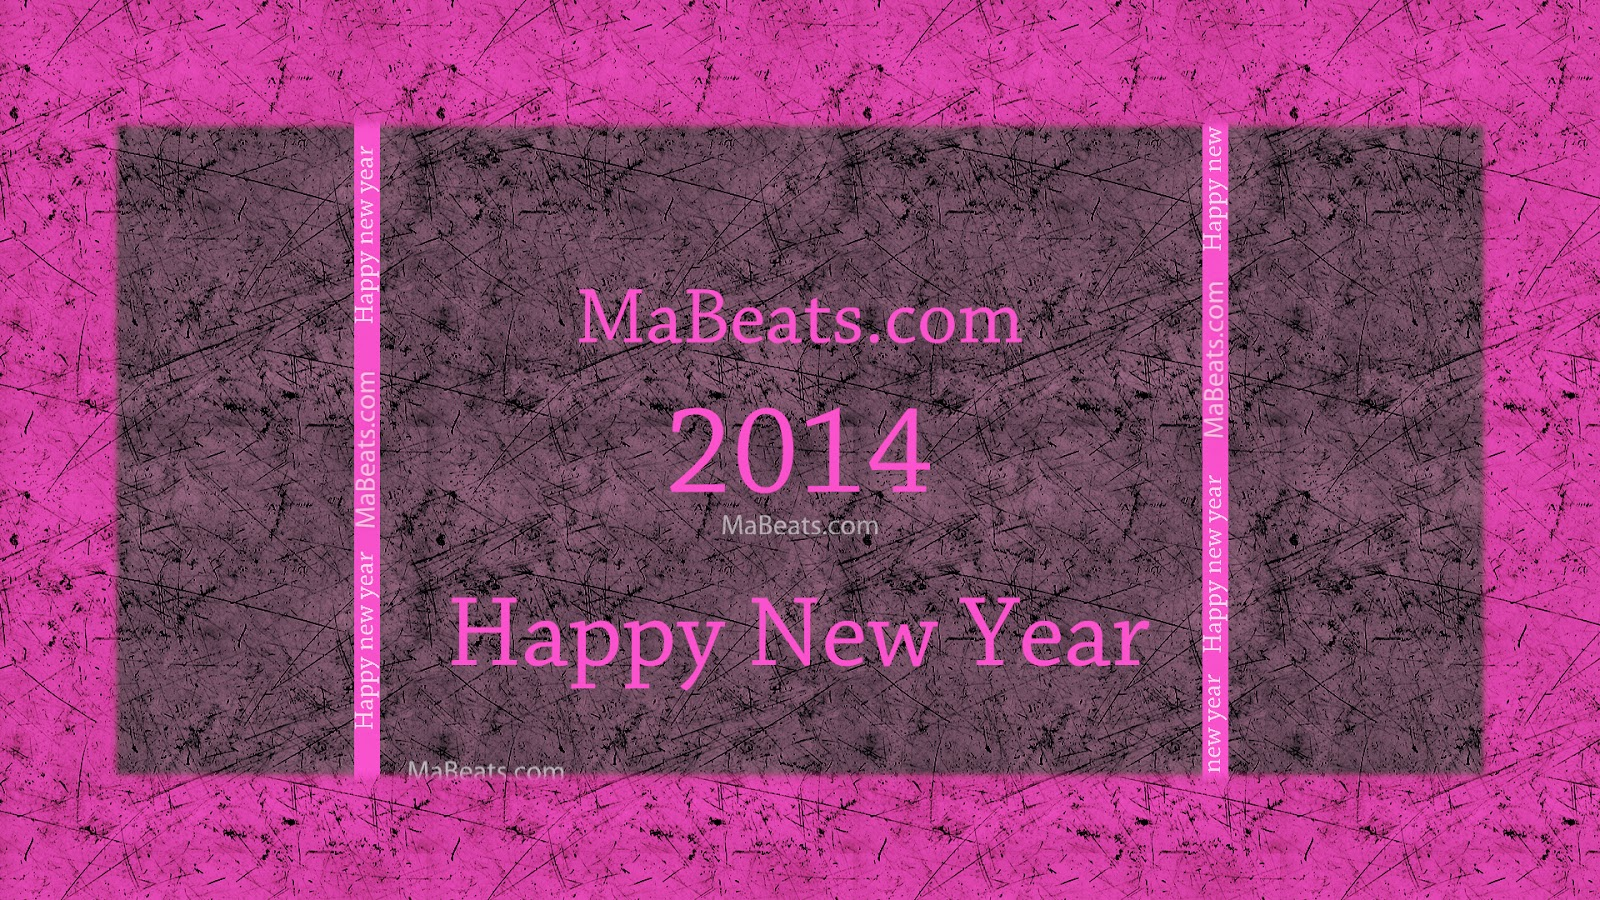 2014 - Yet Another Glorious Year